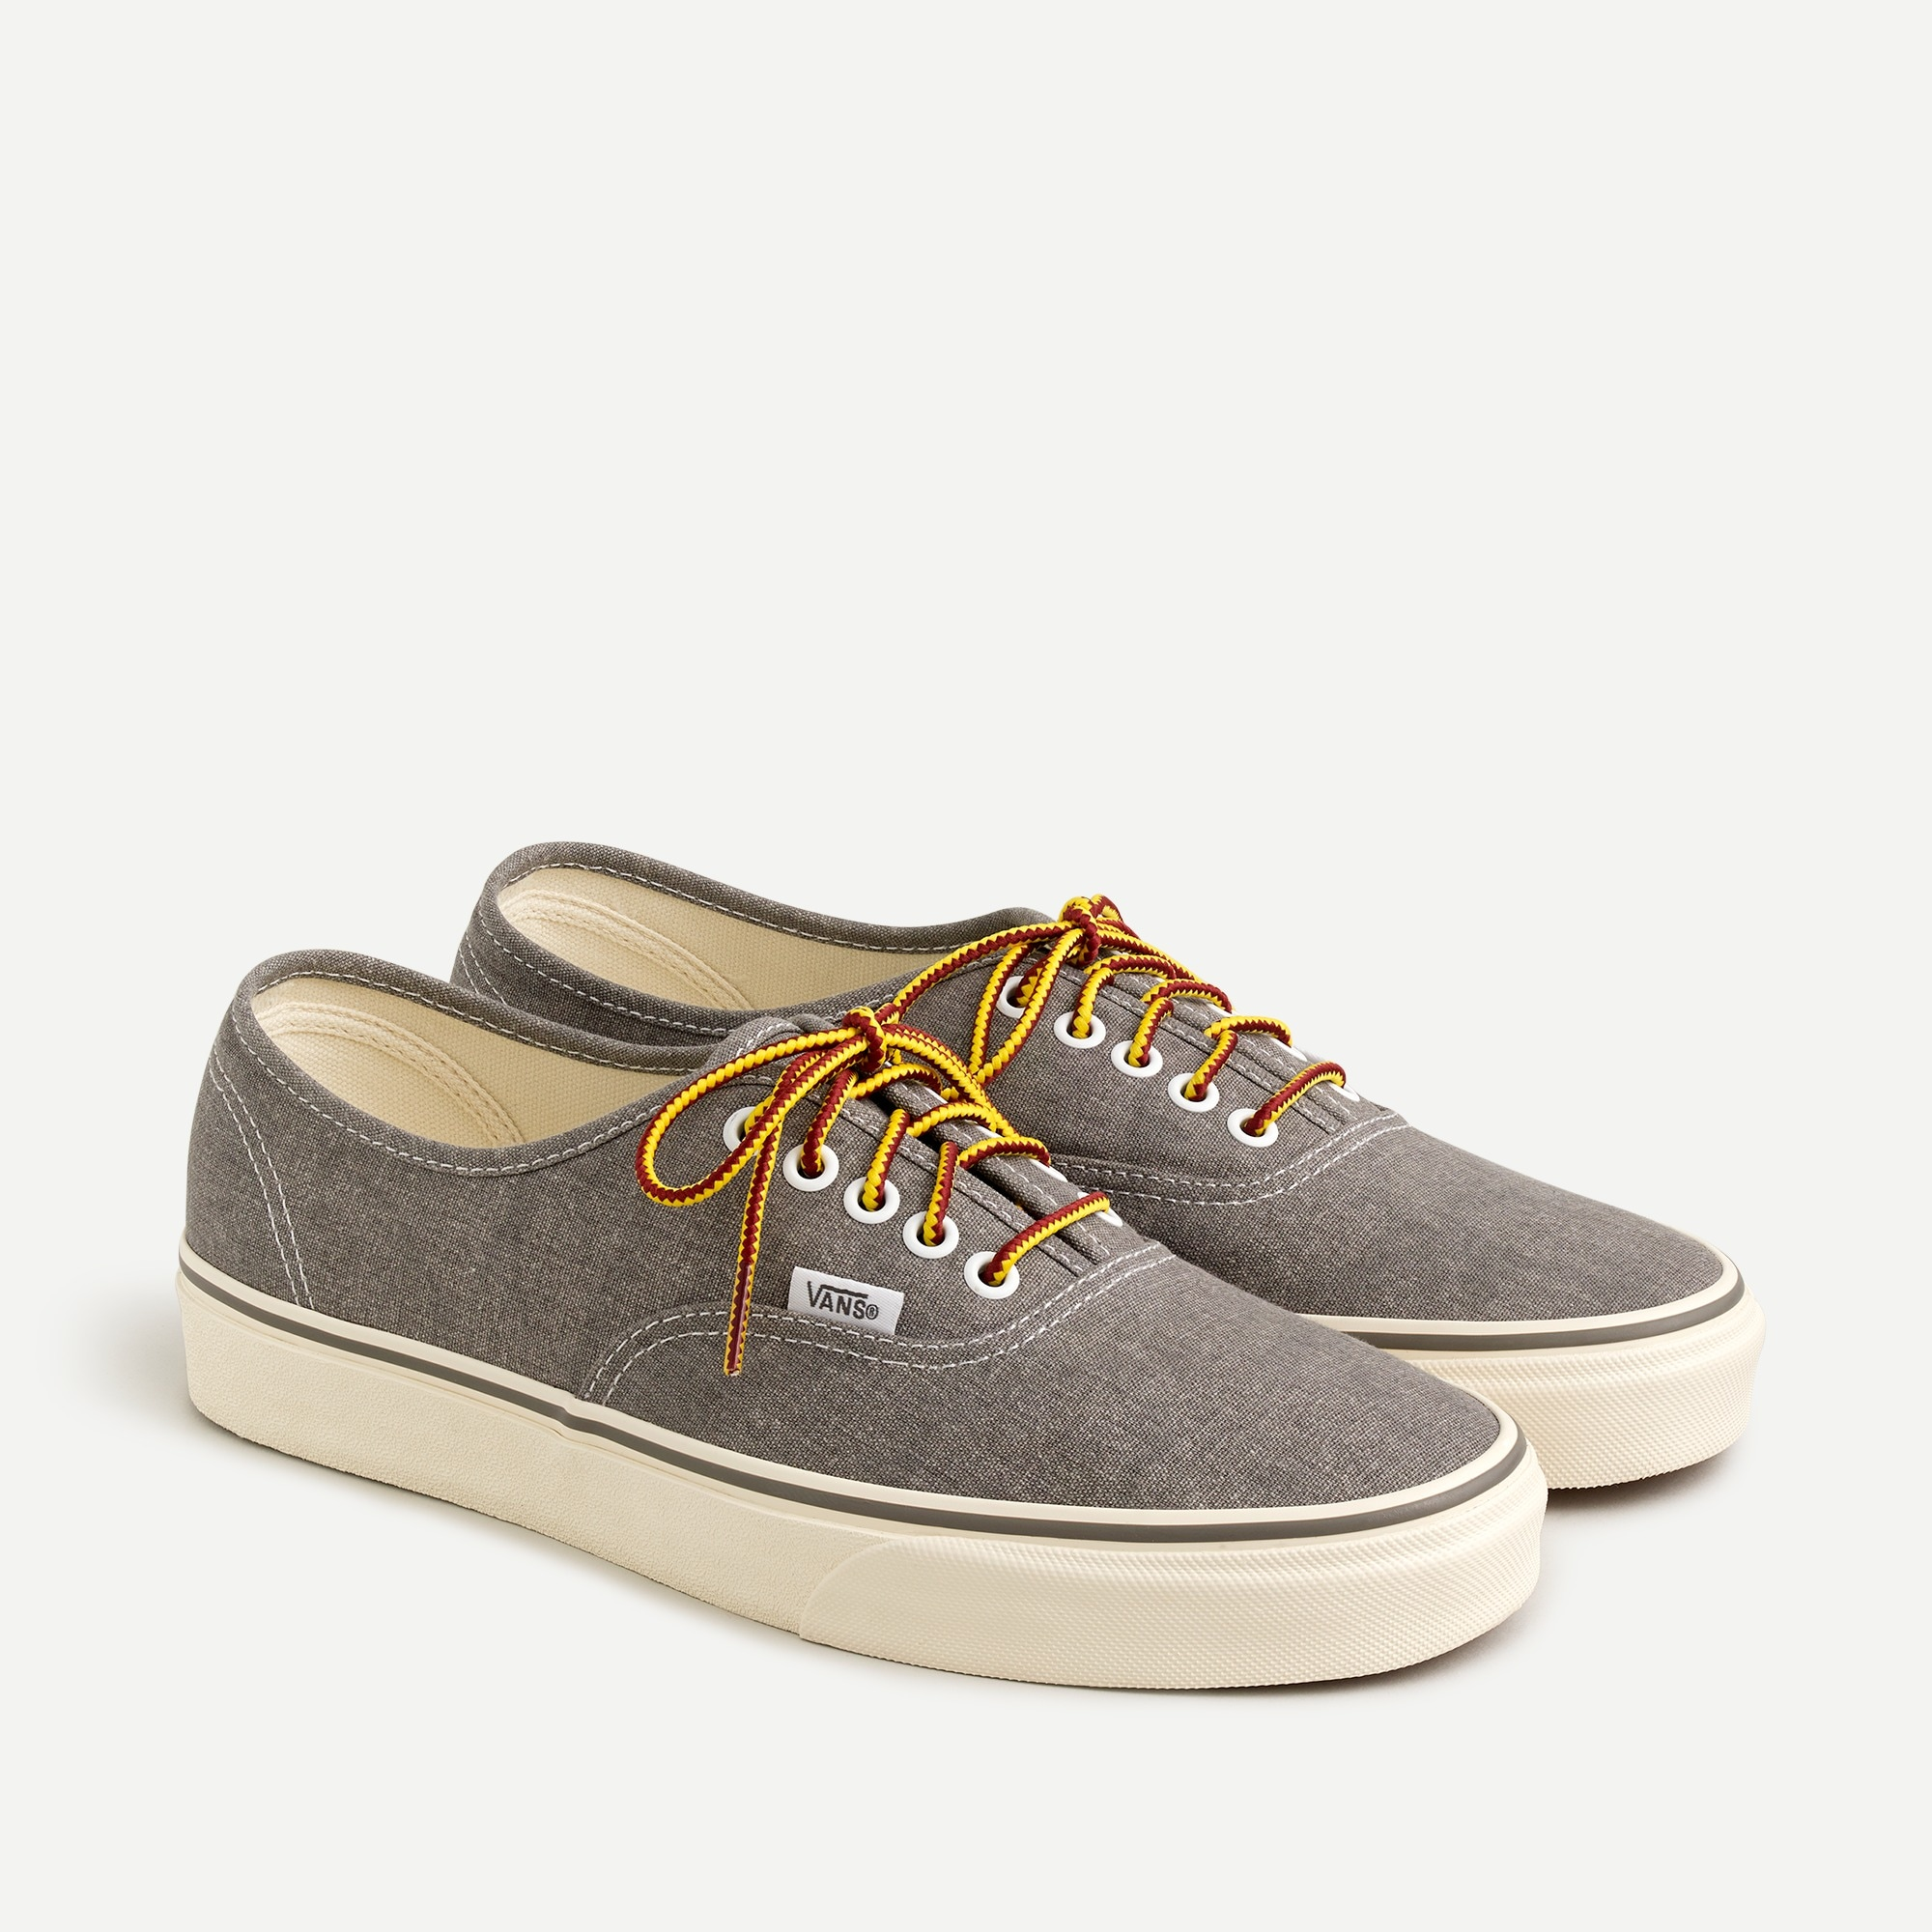 mens Vans® for J.Crew washed canvas authentic sneakers